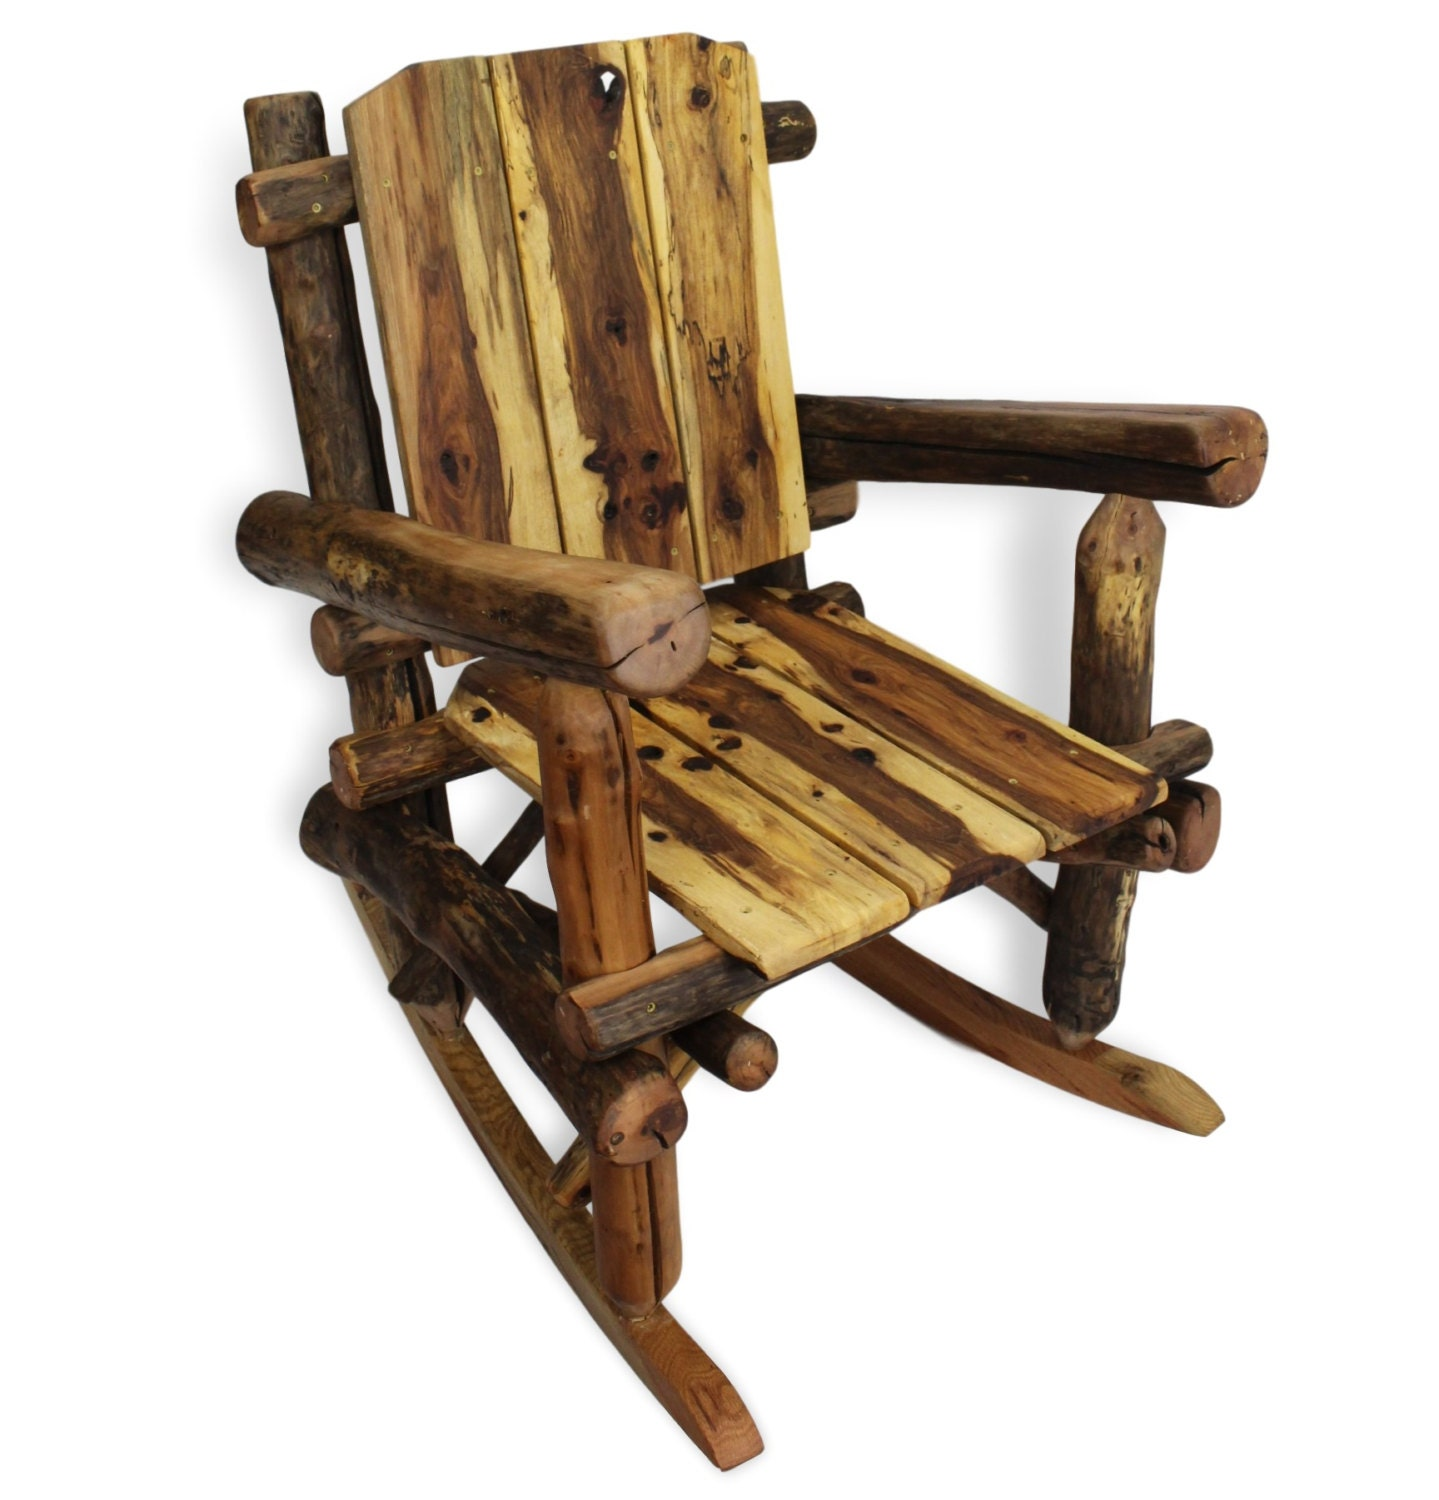 Rustic rocking chair reclaimed wood rocking chair reclaimed Wood rocking chair